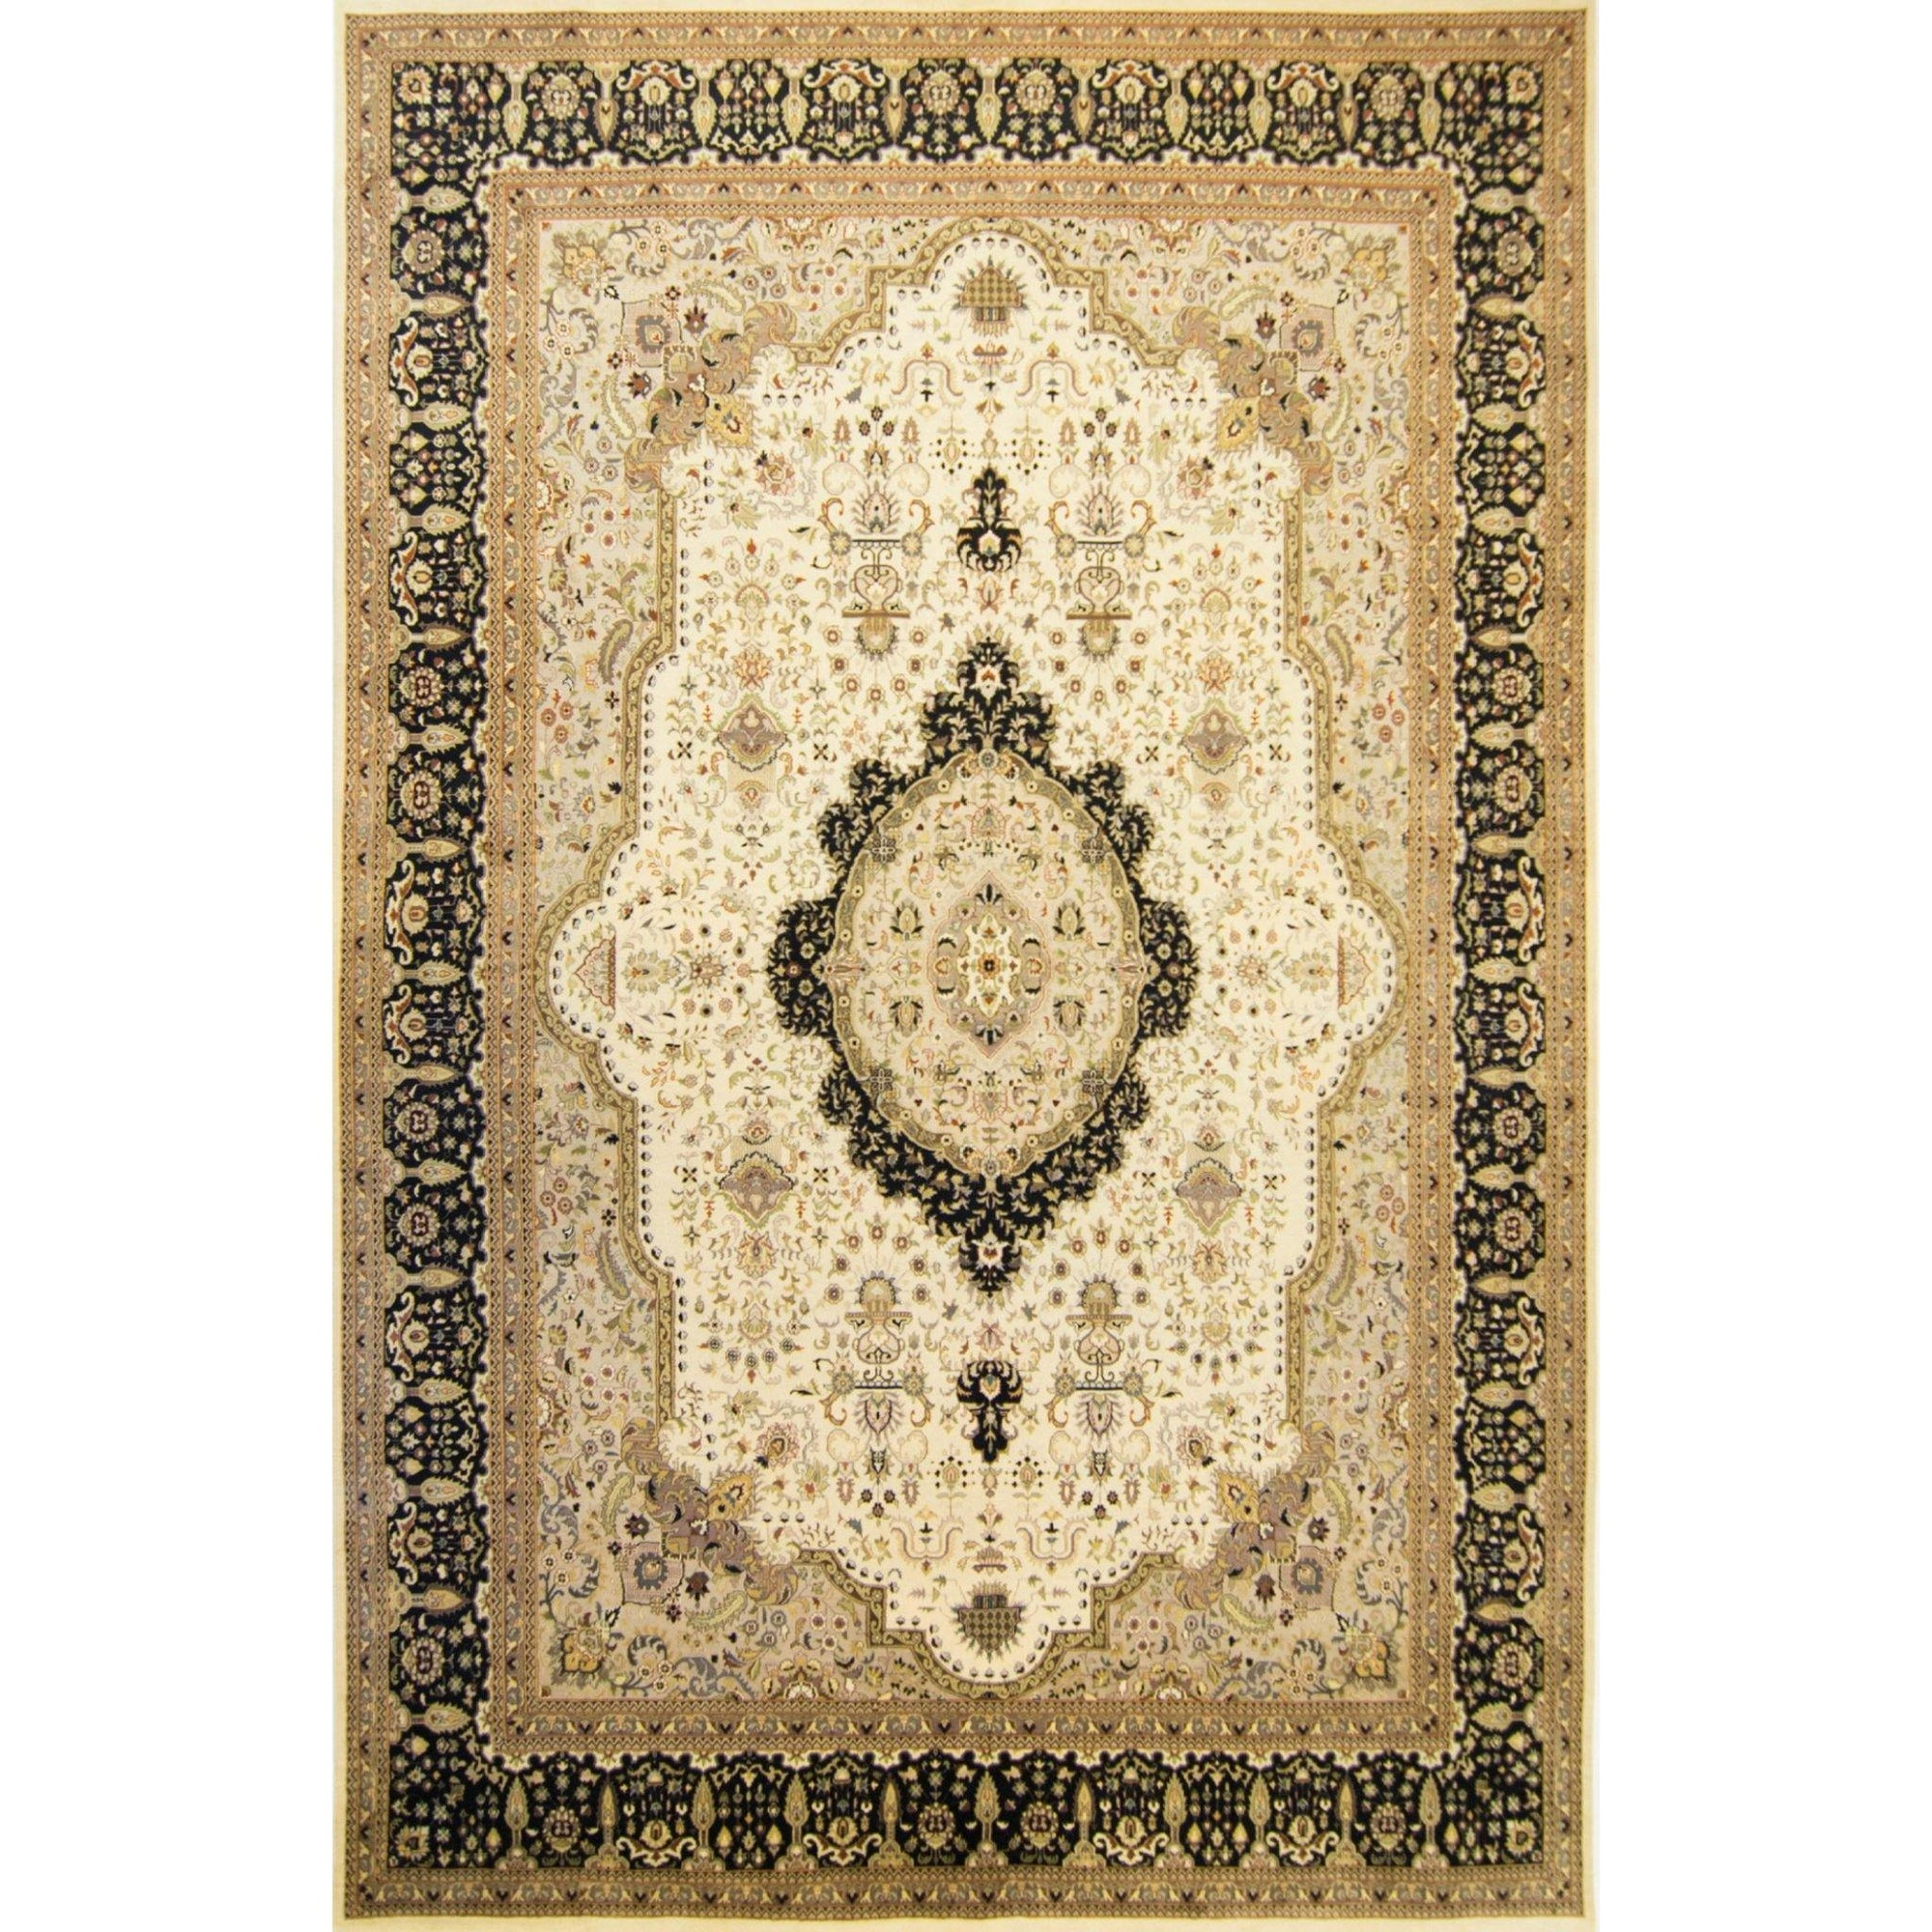 Super Fine Hand-knotted Wool & Silk Kerman Rug 307cm x 430cm Persian-Rug | House-of-Haghi | NewMarket | Auckland | NZ | Handmade Persian Rugs | Hand Knotted Persian Rugs